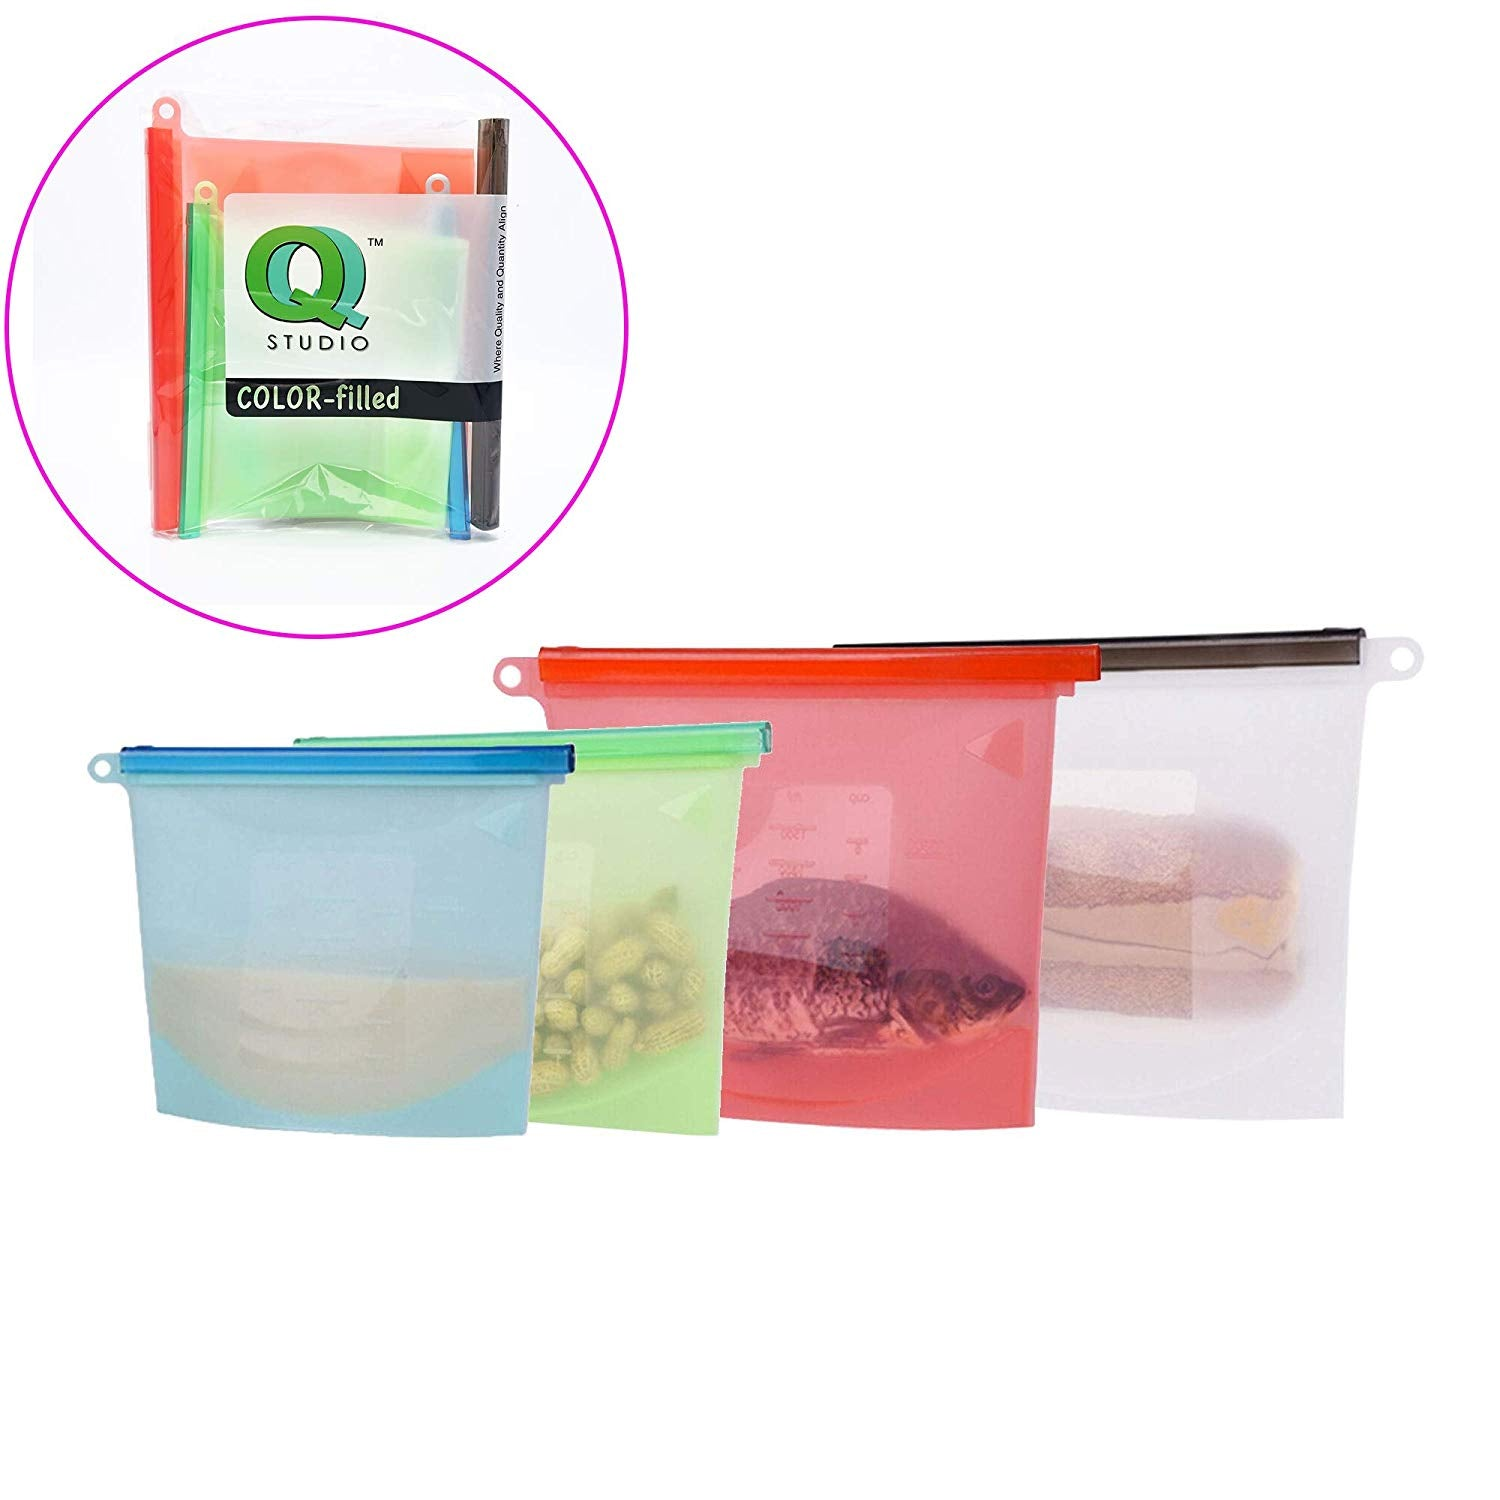 2 Large & 2 Regular Reusable Silicone Food Storage Bag Airtight Seal Preservation Versatile Kitchen Utensil by QQ Studio